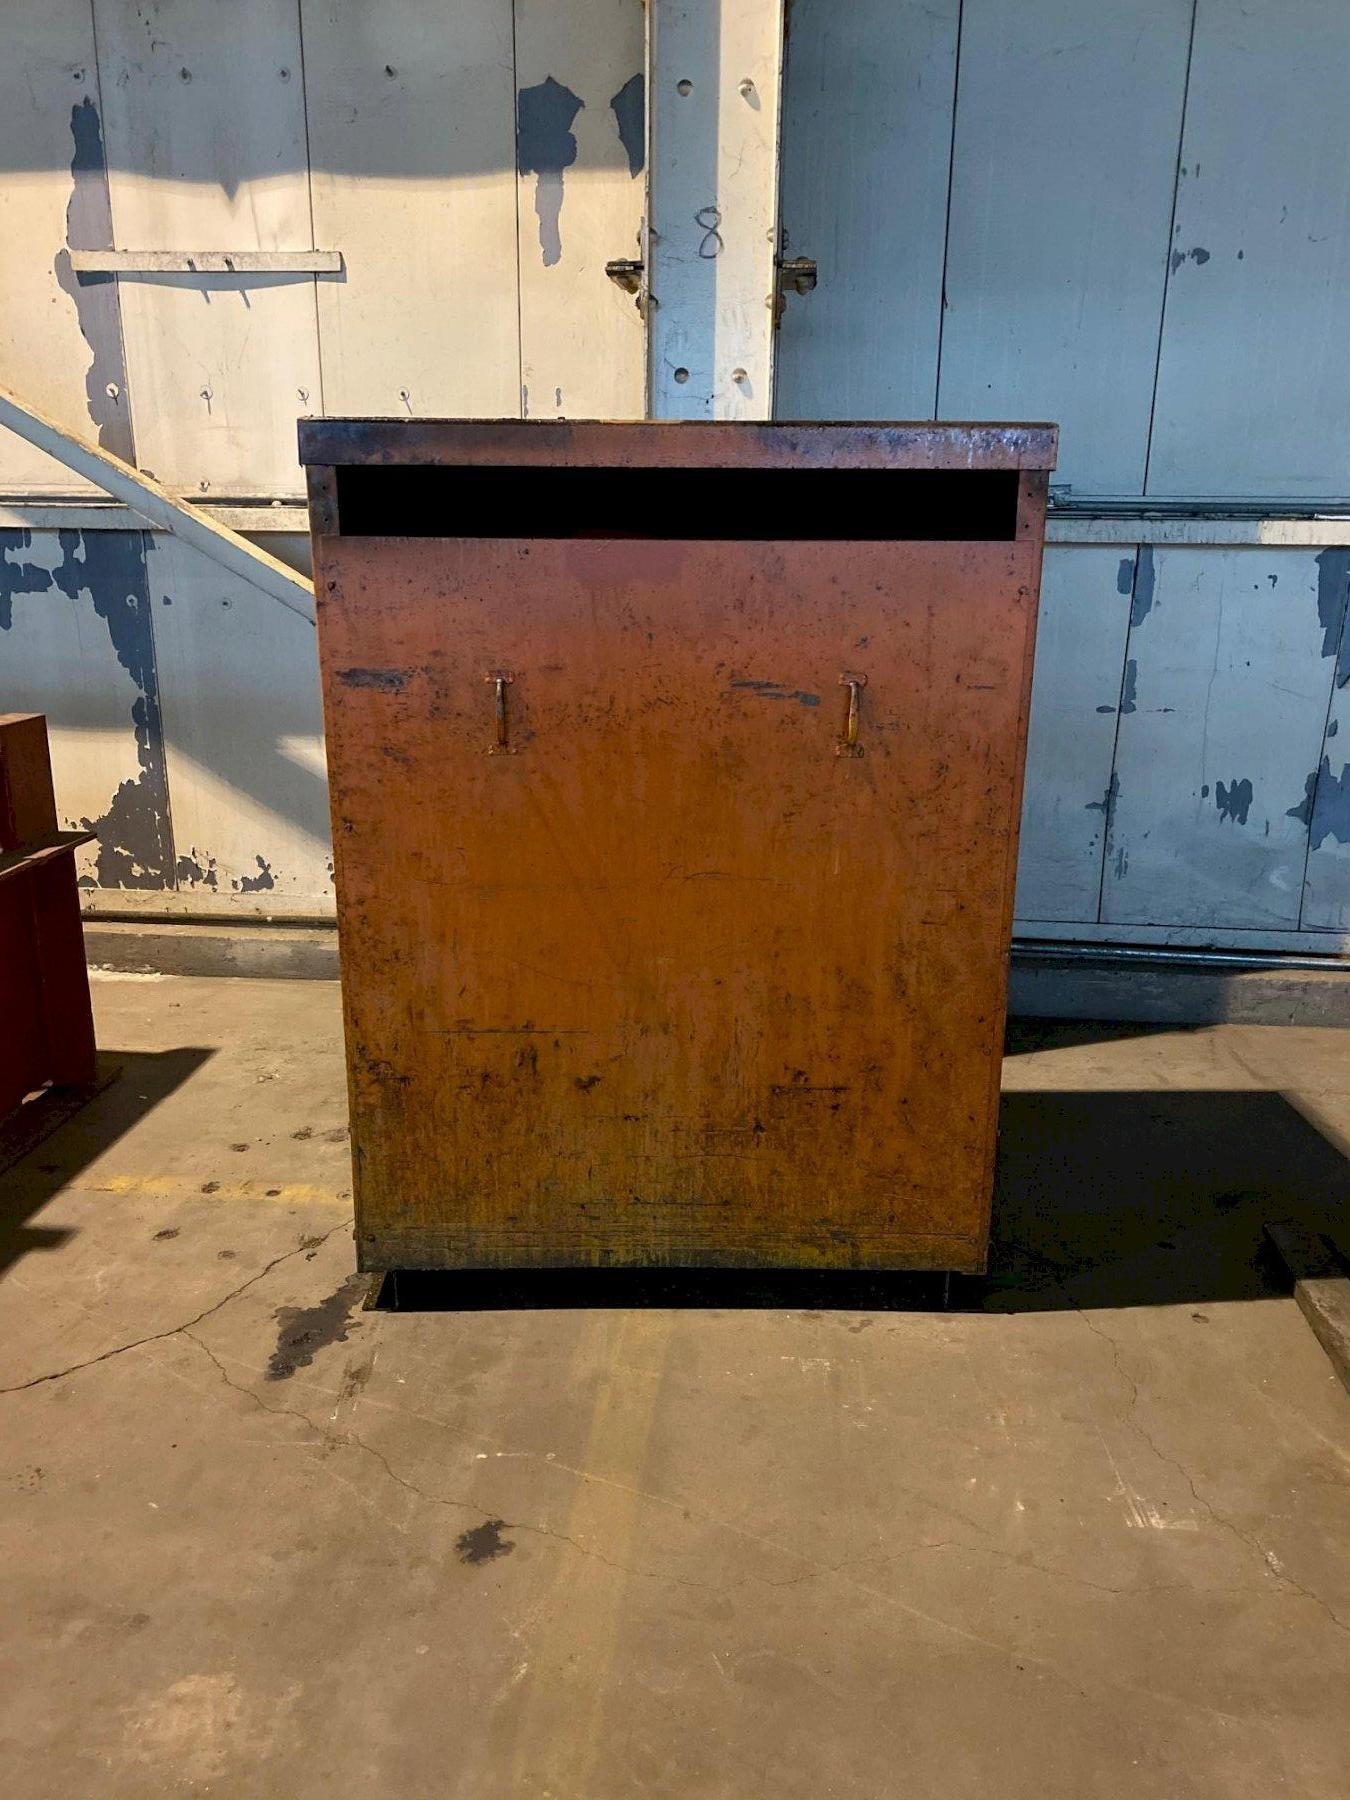 495 KVA SYLVANIA POWER TRANSFORMER. STOCK # 1059320